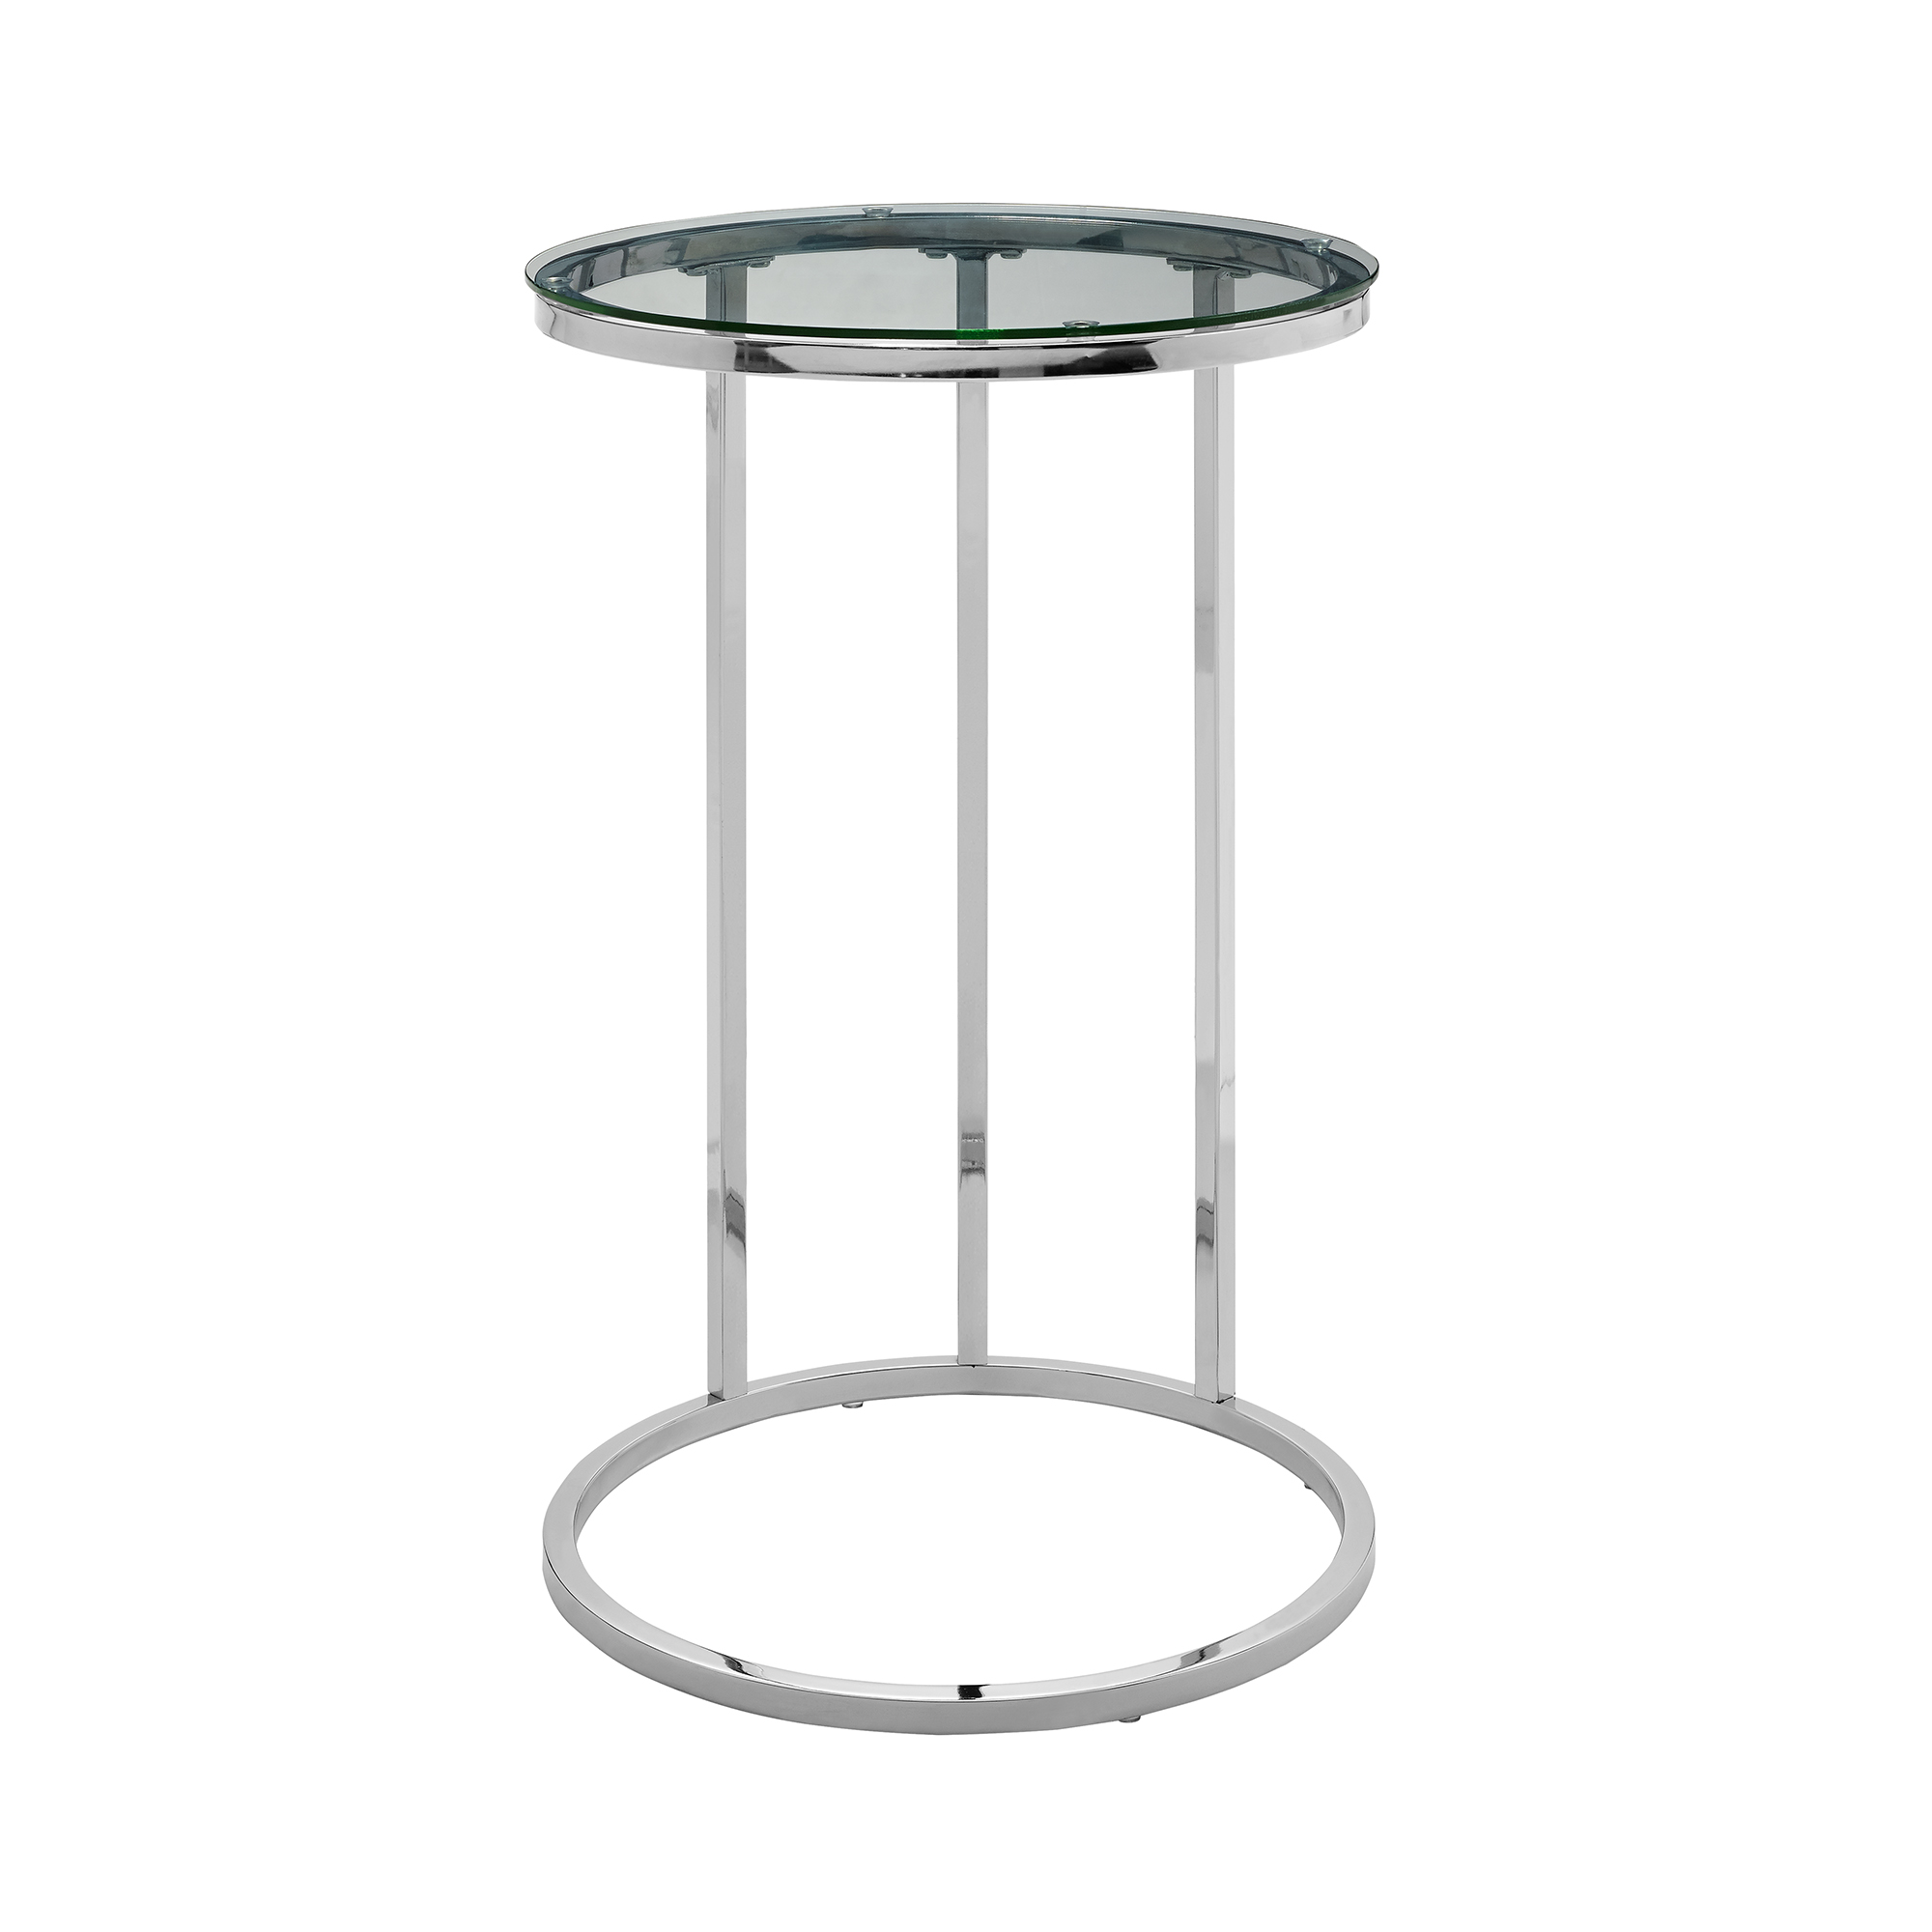 manor park modern round end table white marble top gold base accent nursery drop leaf dining room green metal your focus runner pattern unique entryway tables kohls threshold